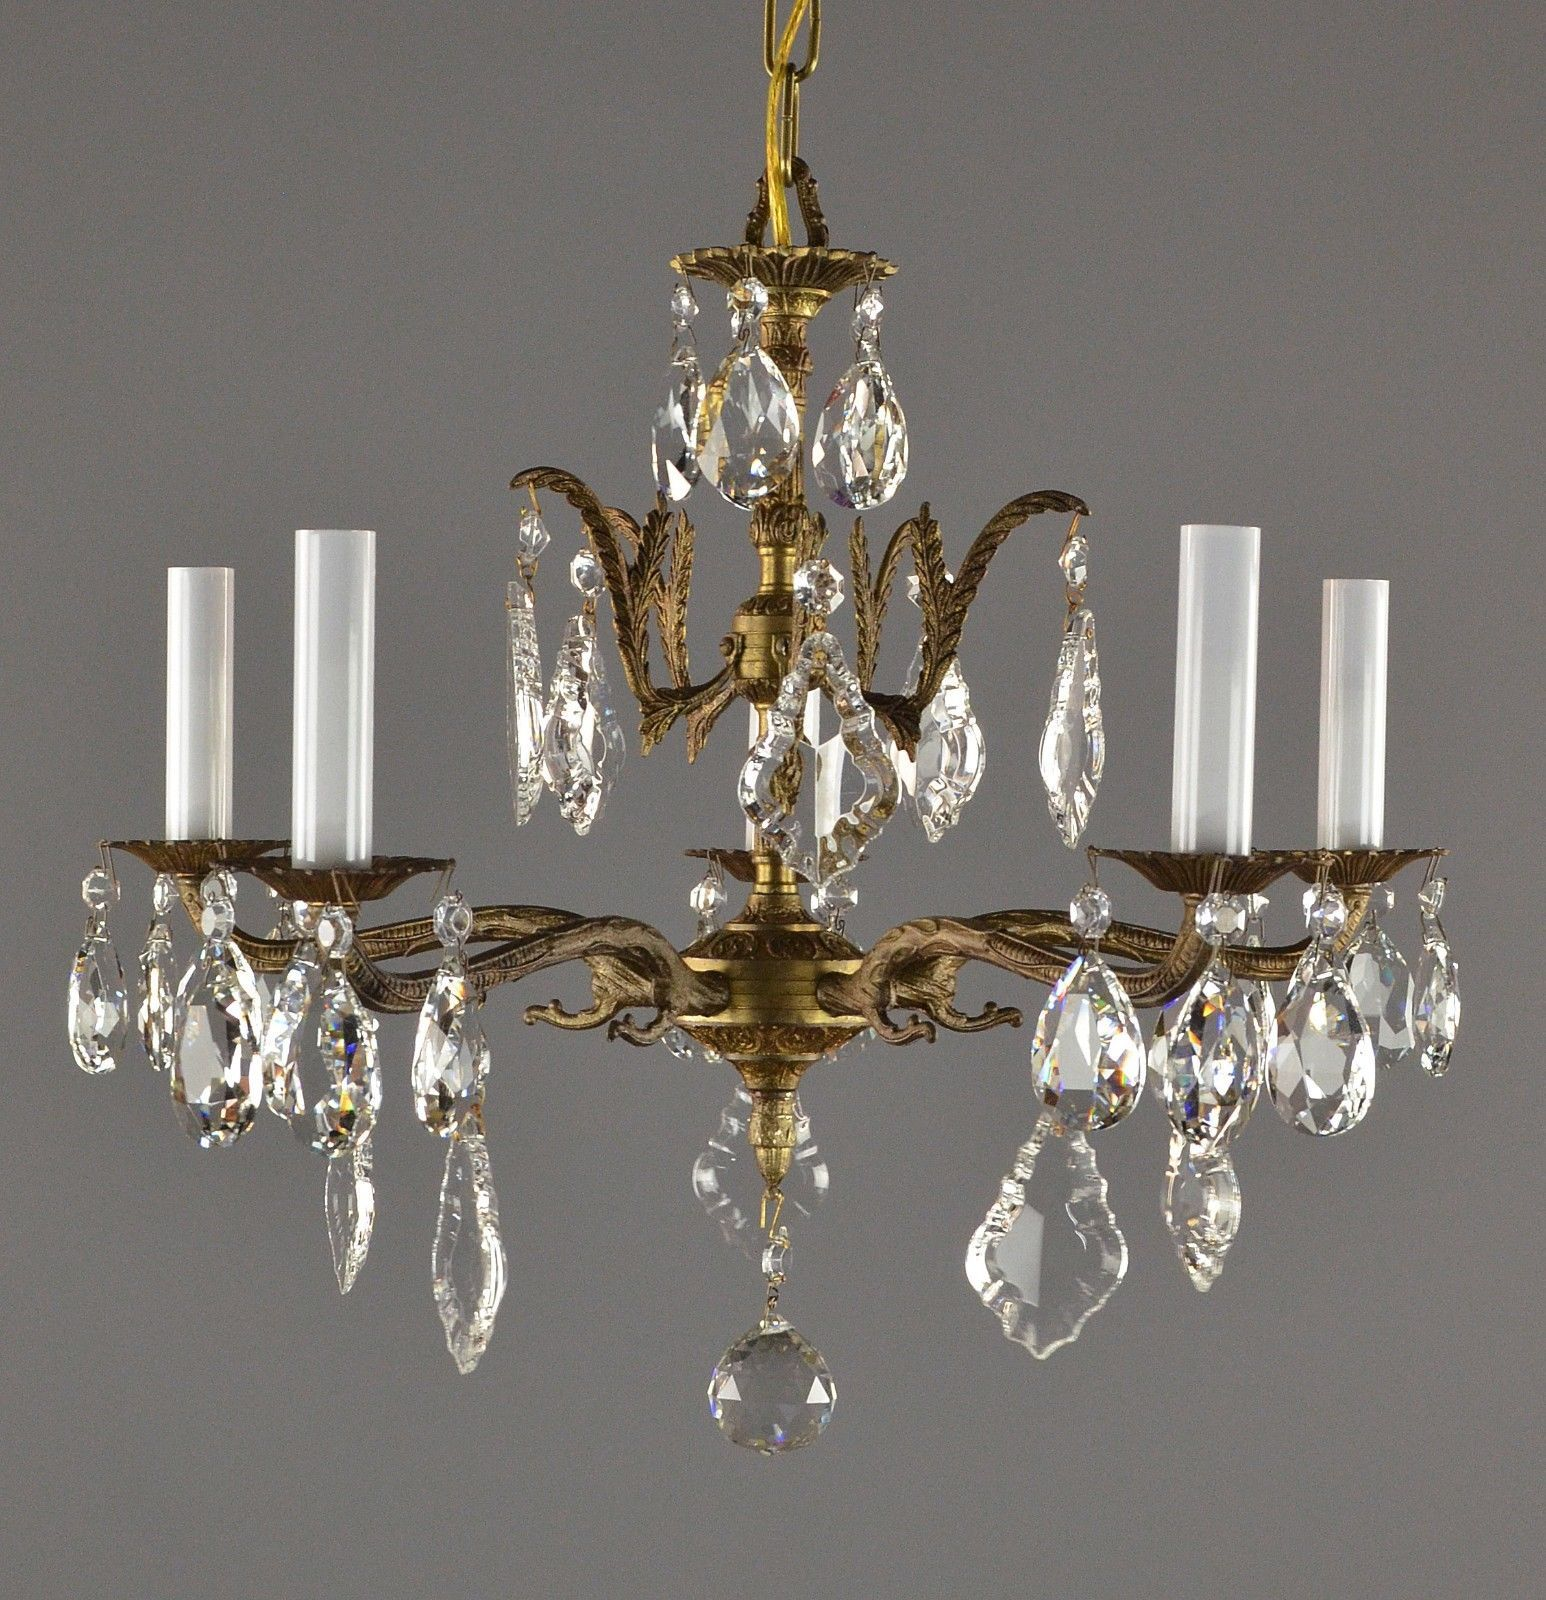 Spanish brass crystal chandelier c1950 vintage antique gold french spanish brass crystal chandelier c1950 vintage antique gold french style ebay mozeypictures Image collections